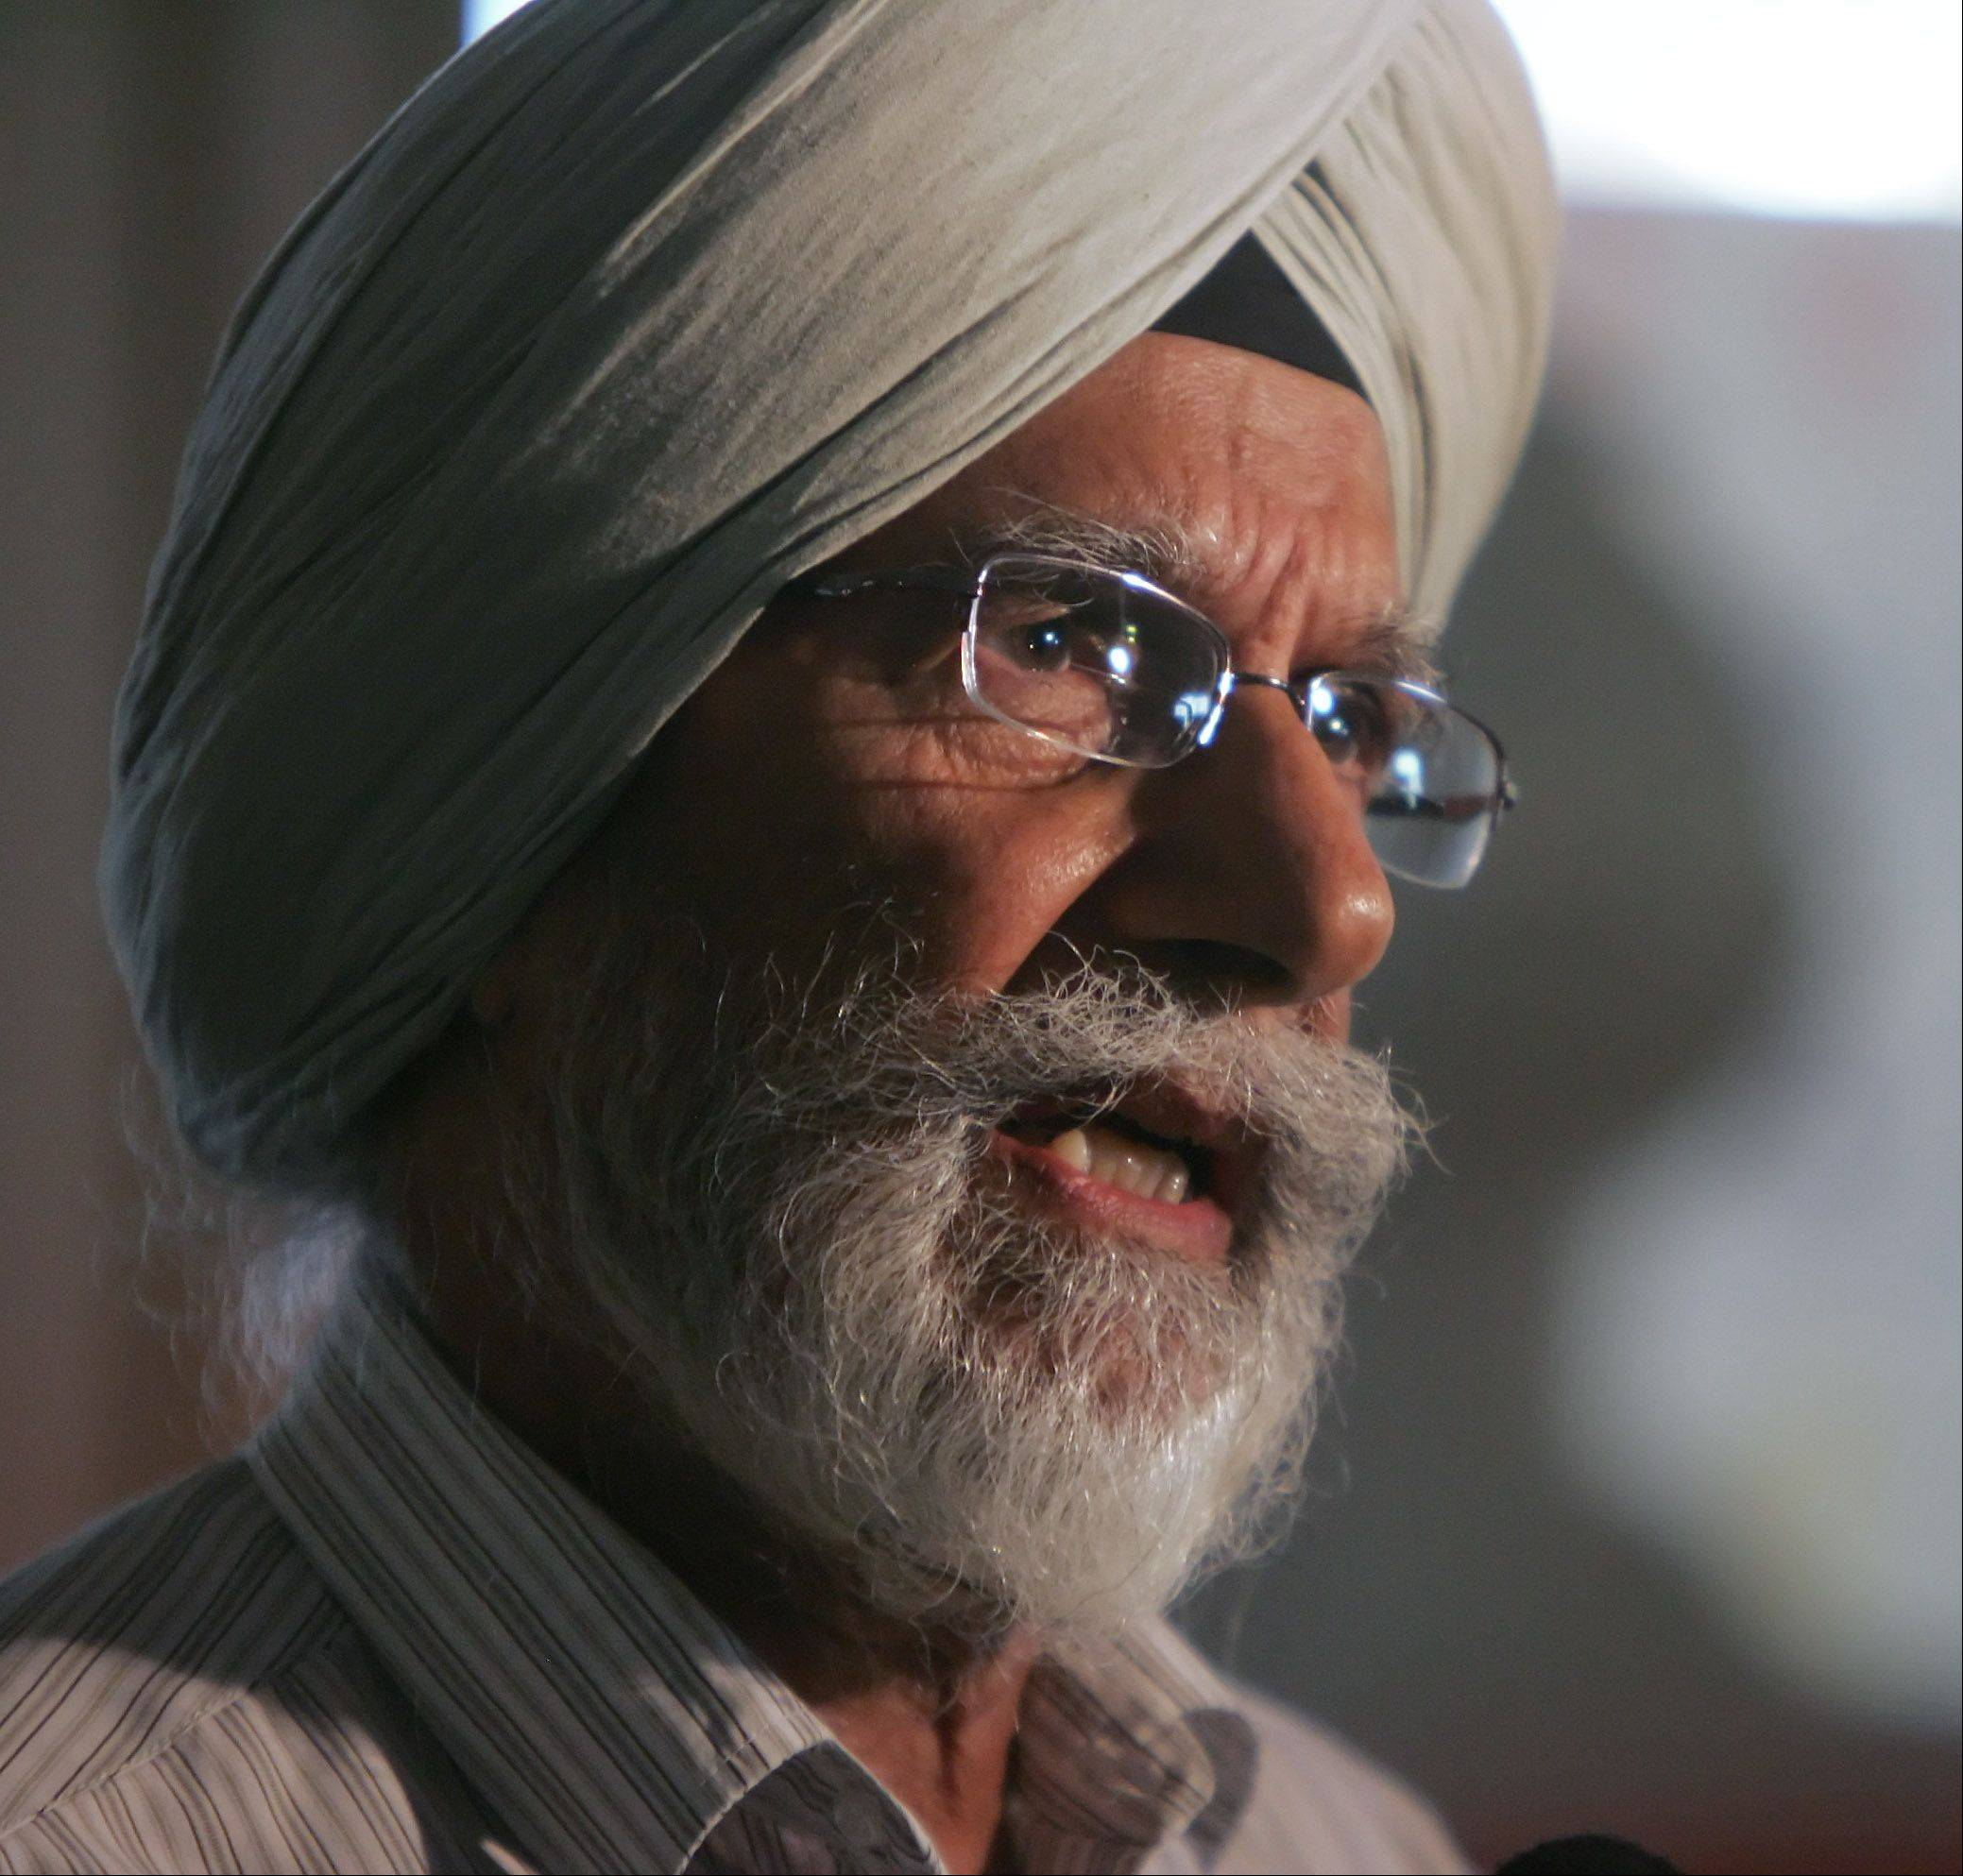 Sikhs seek federal support for tracking hate crimes